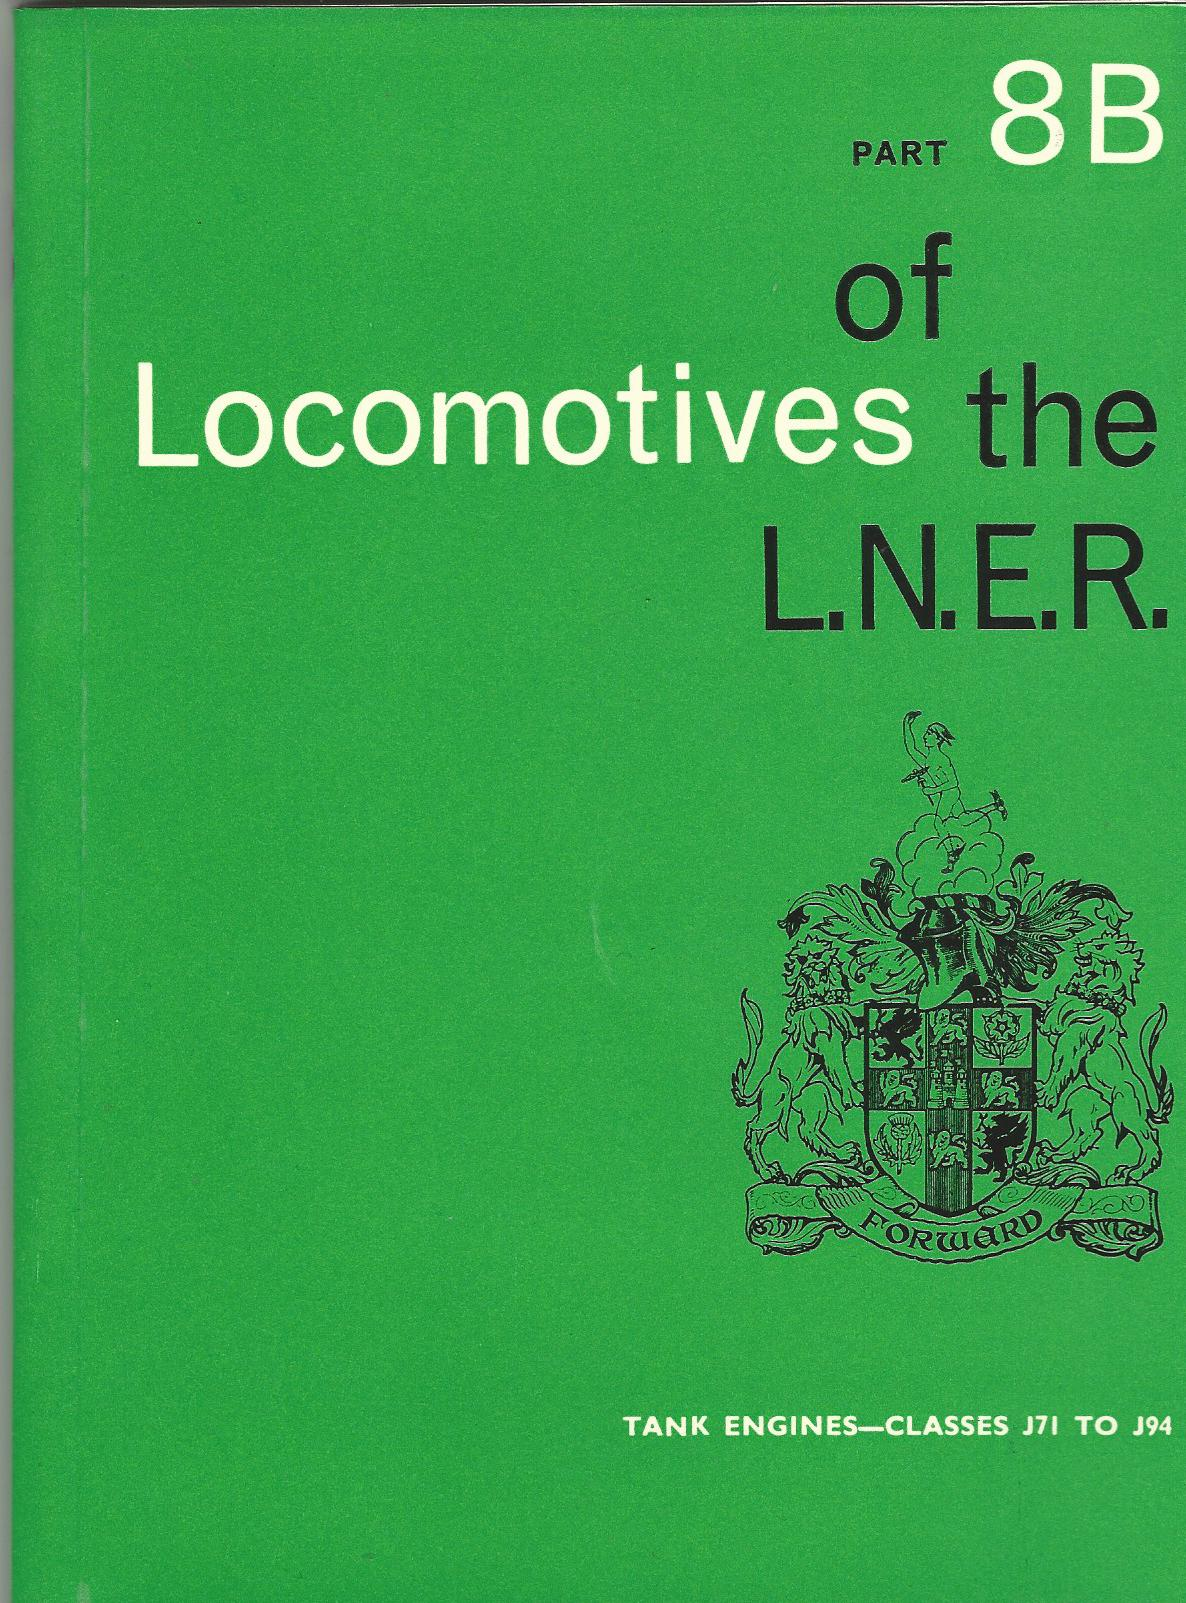 Image for Locomotives of the LN.E.R. Part 8B: Tank Engines - Classes J71 To J94.